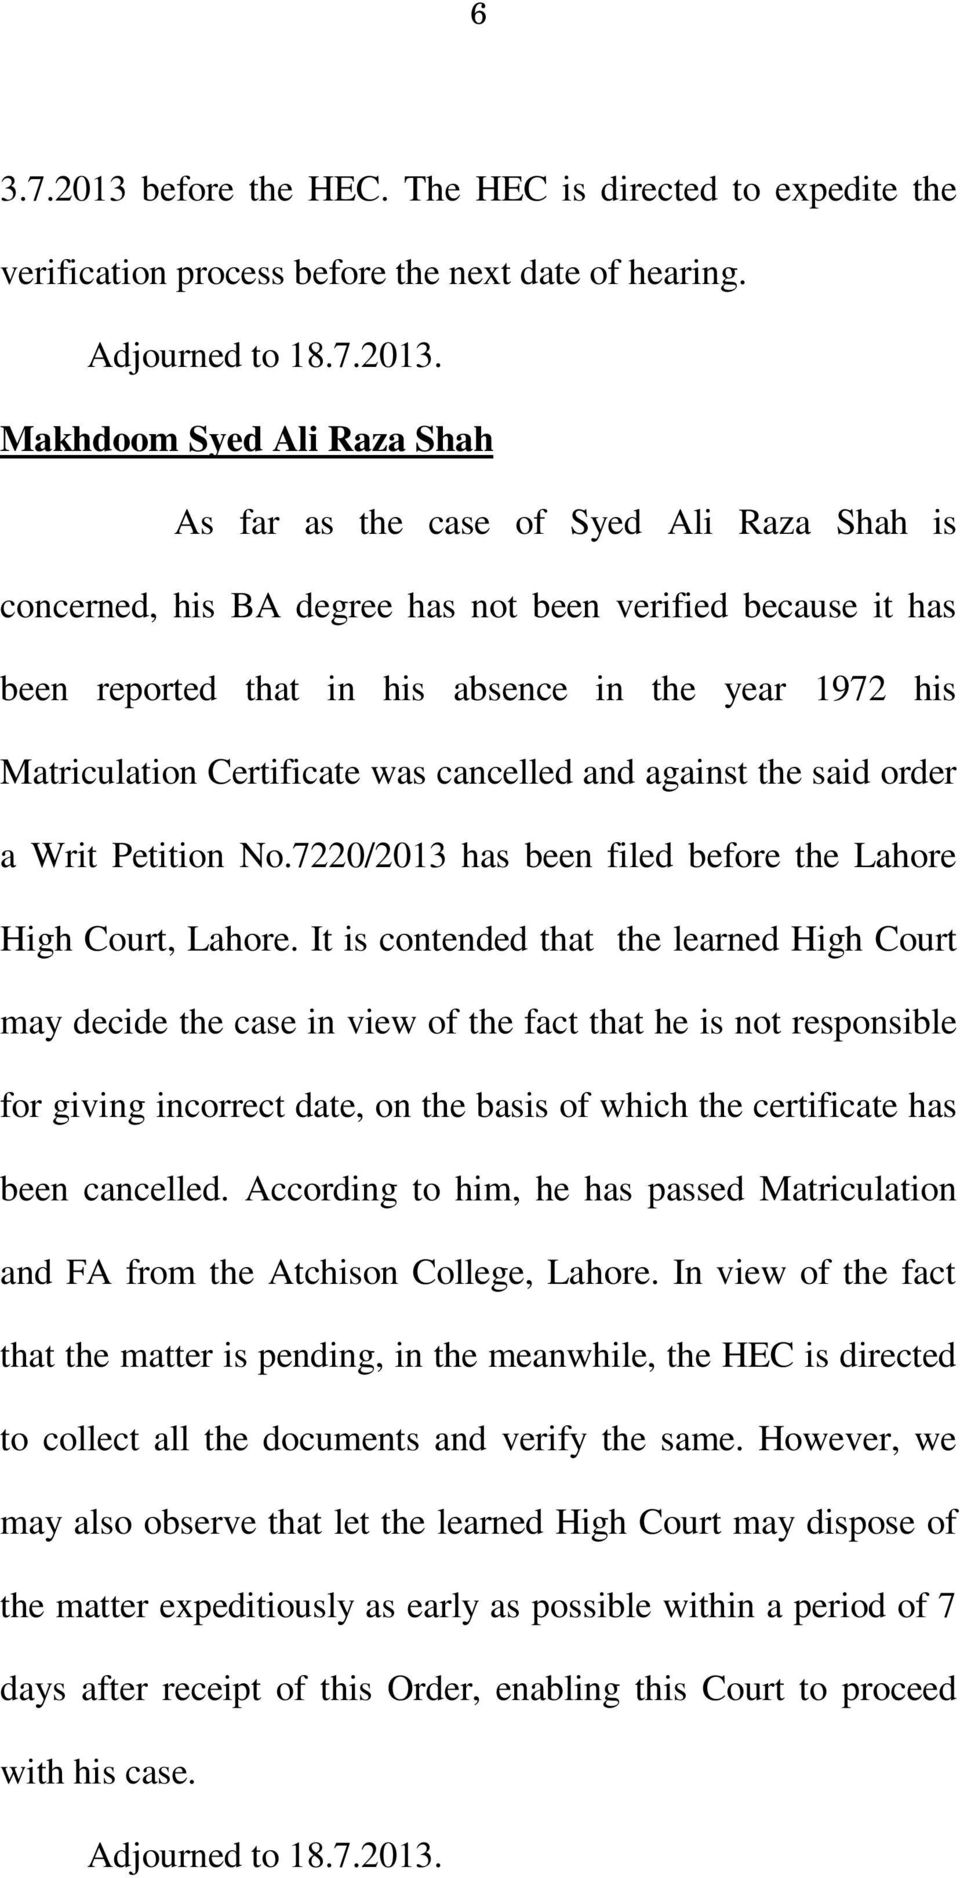 Matriculation Certificate was cancelled and against the said order a Writ Petition No.7220/2013 has been filed before the Lahore High Court, Lahore.